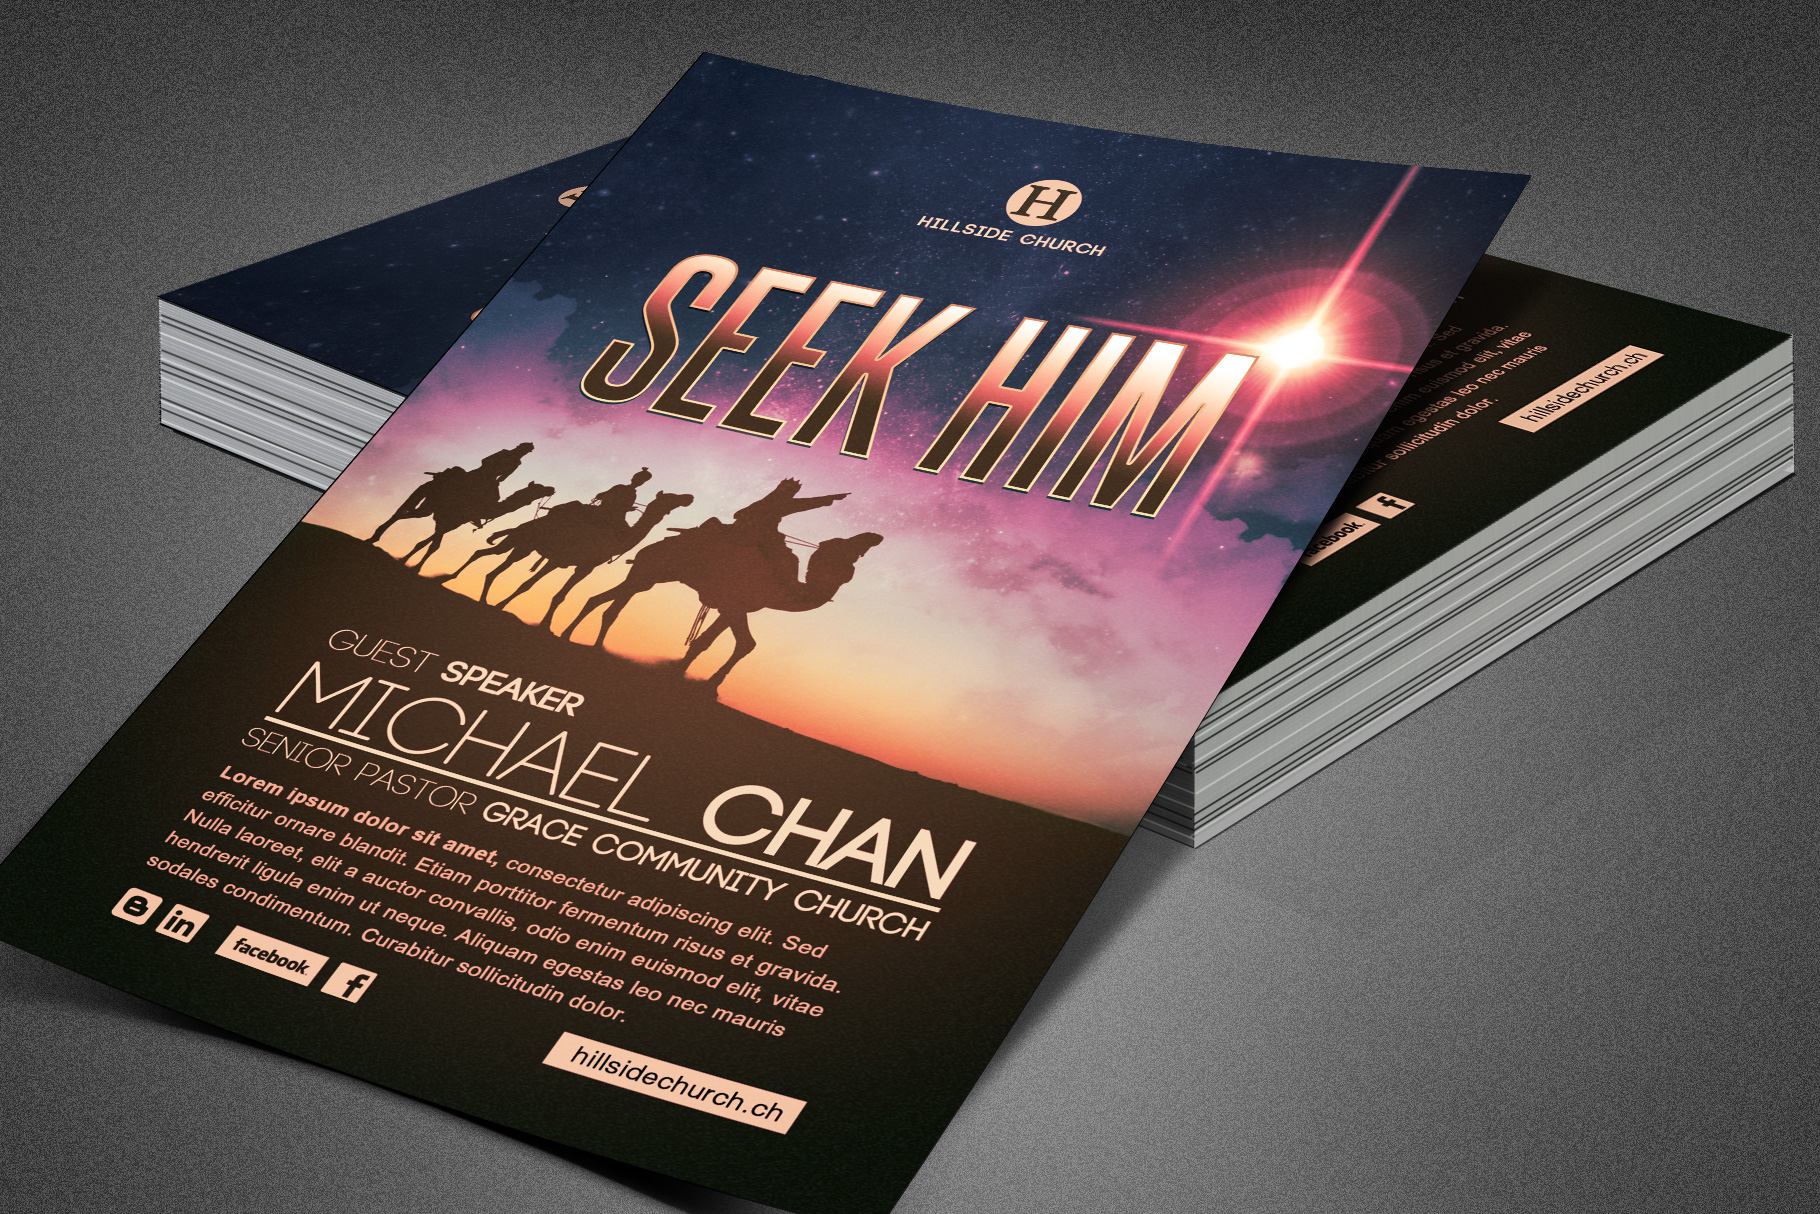 Seek Him Church Flyer Template example image 3